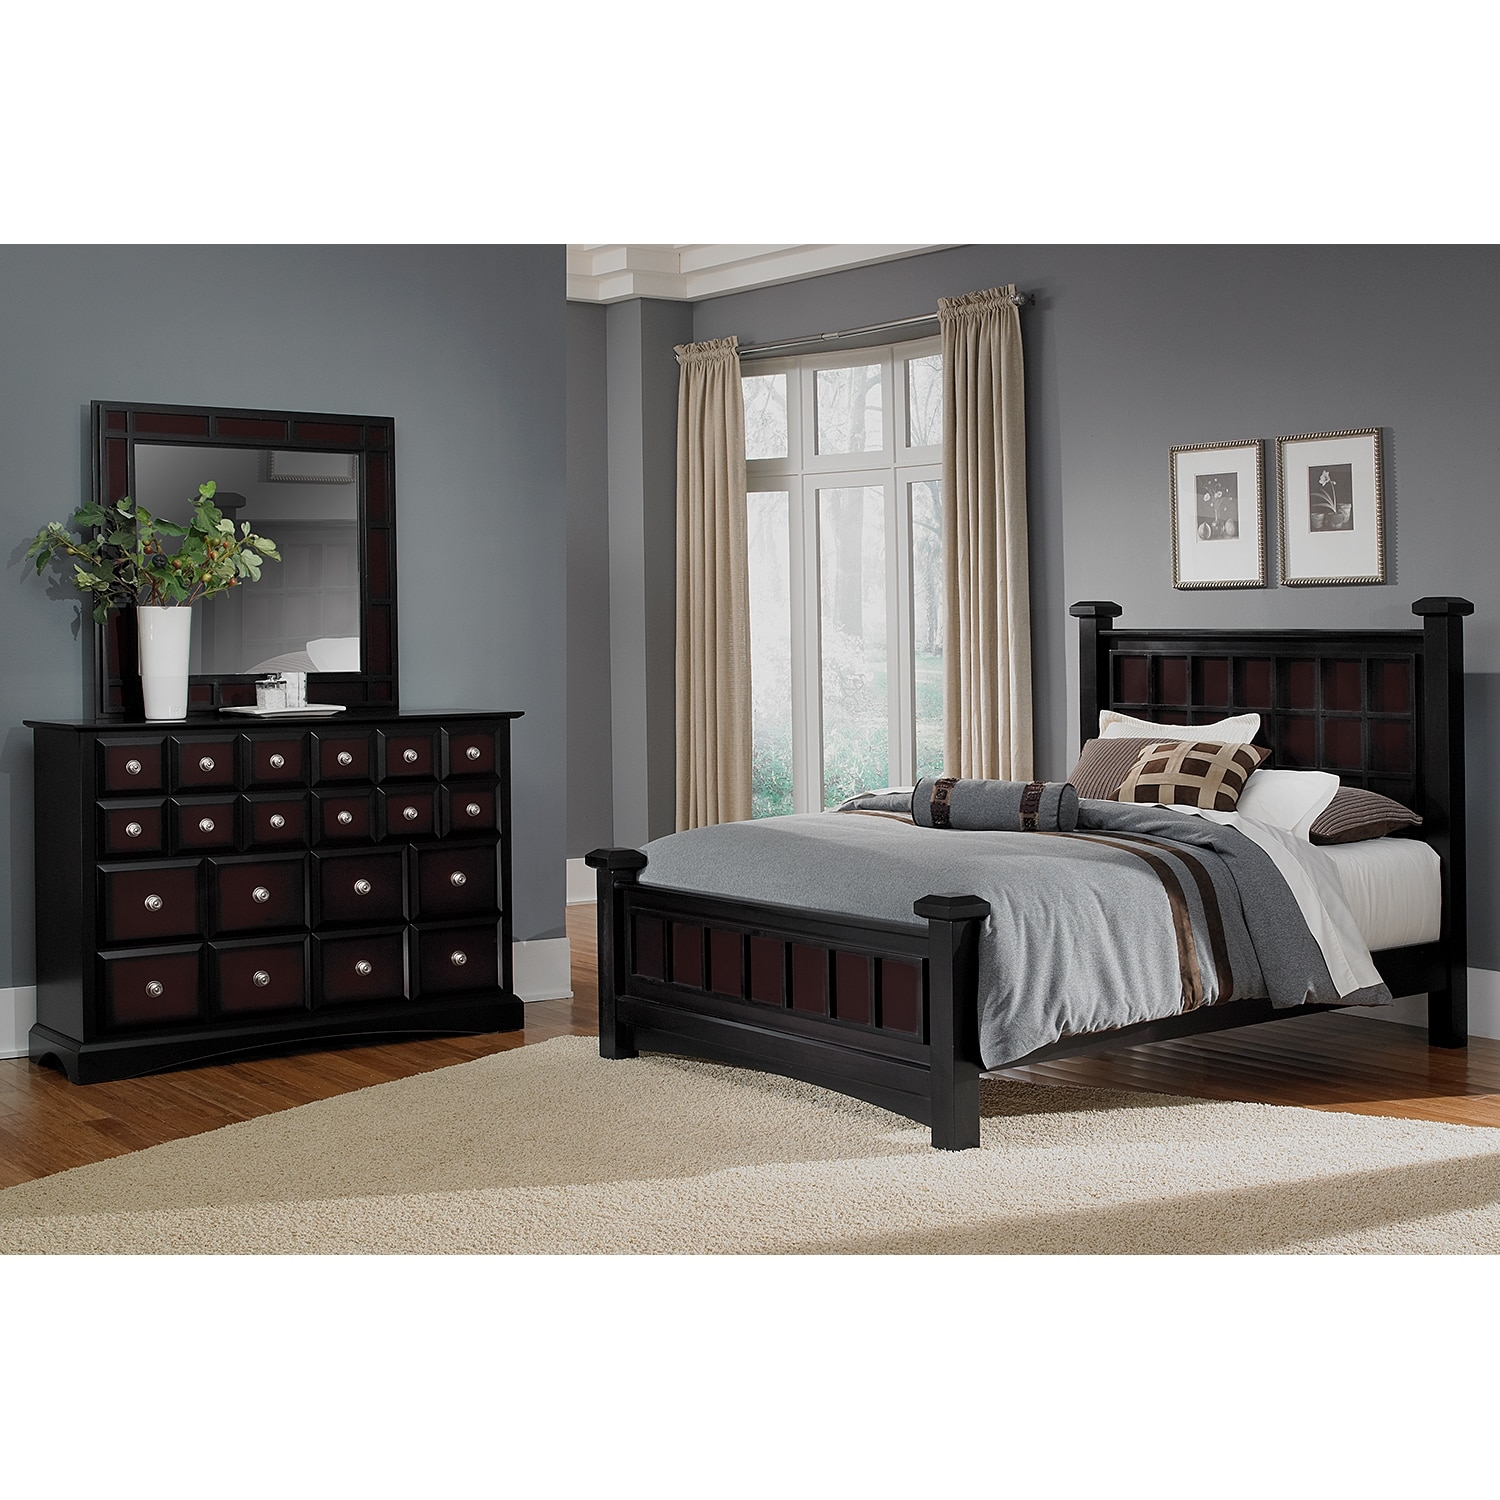 Winchester 5 pc king bedroom value city furniture for Furniture bedroom furniture